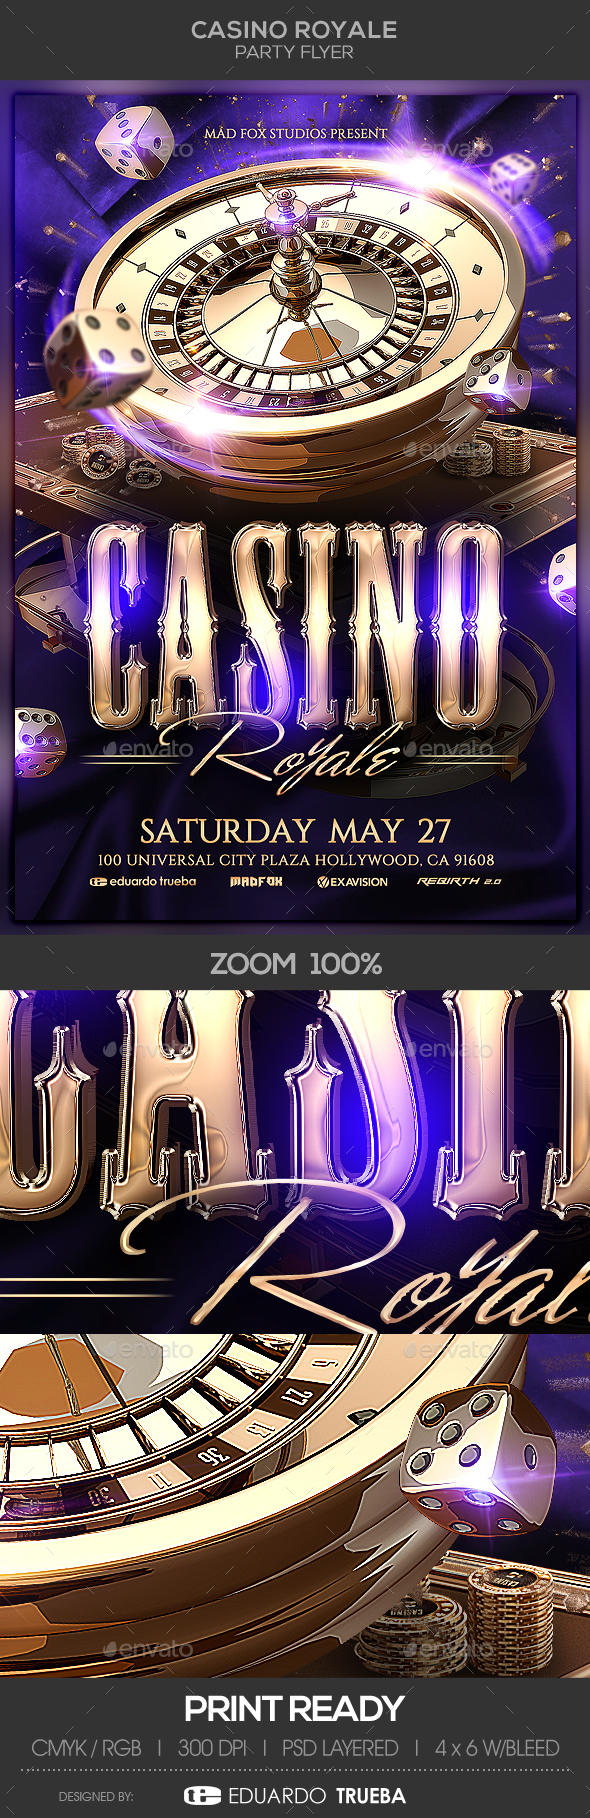 Casino Royale Party Flyer - Events Flyers